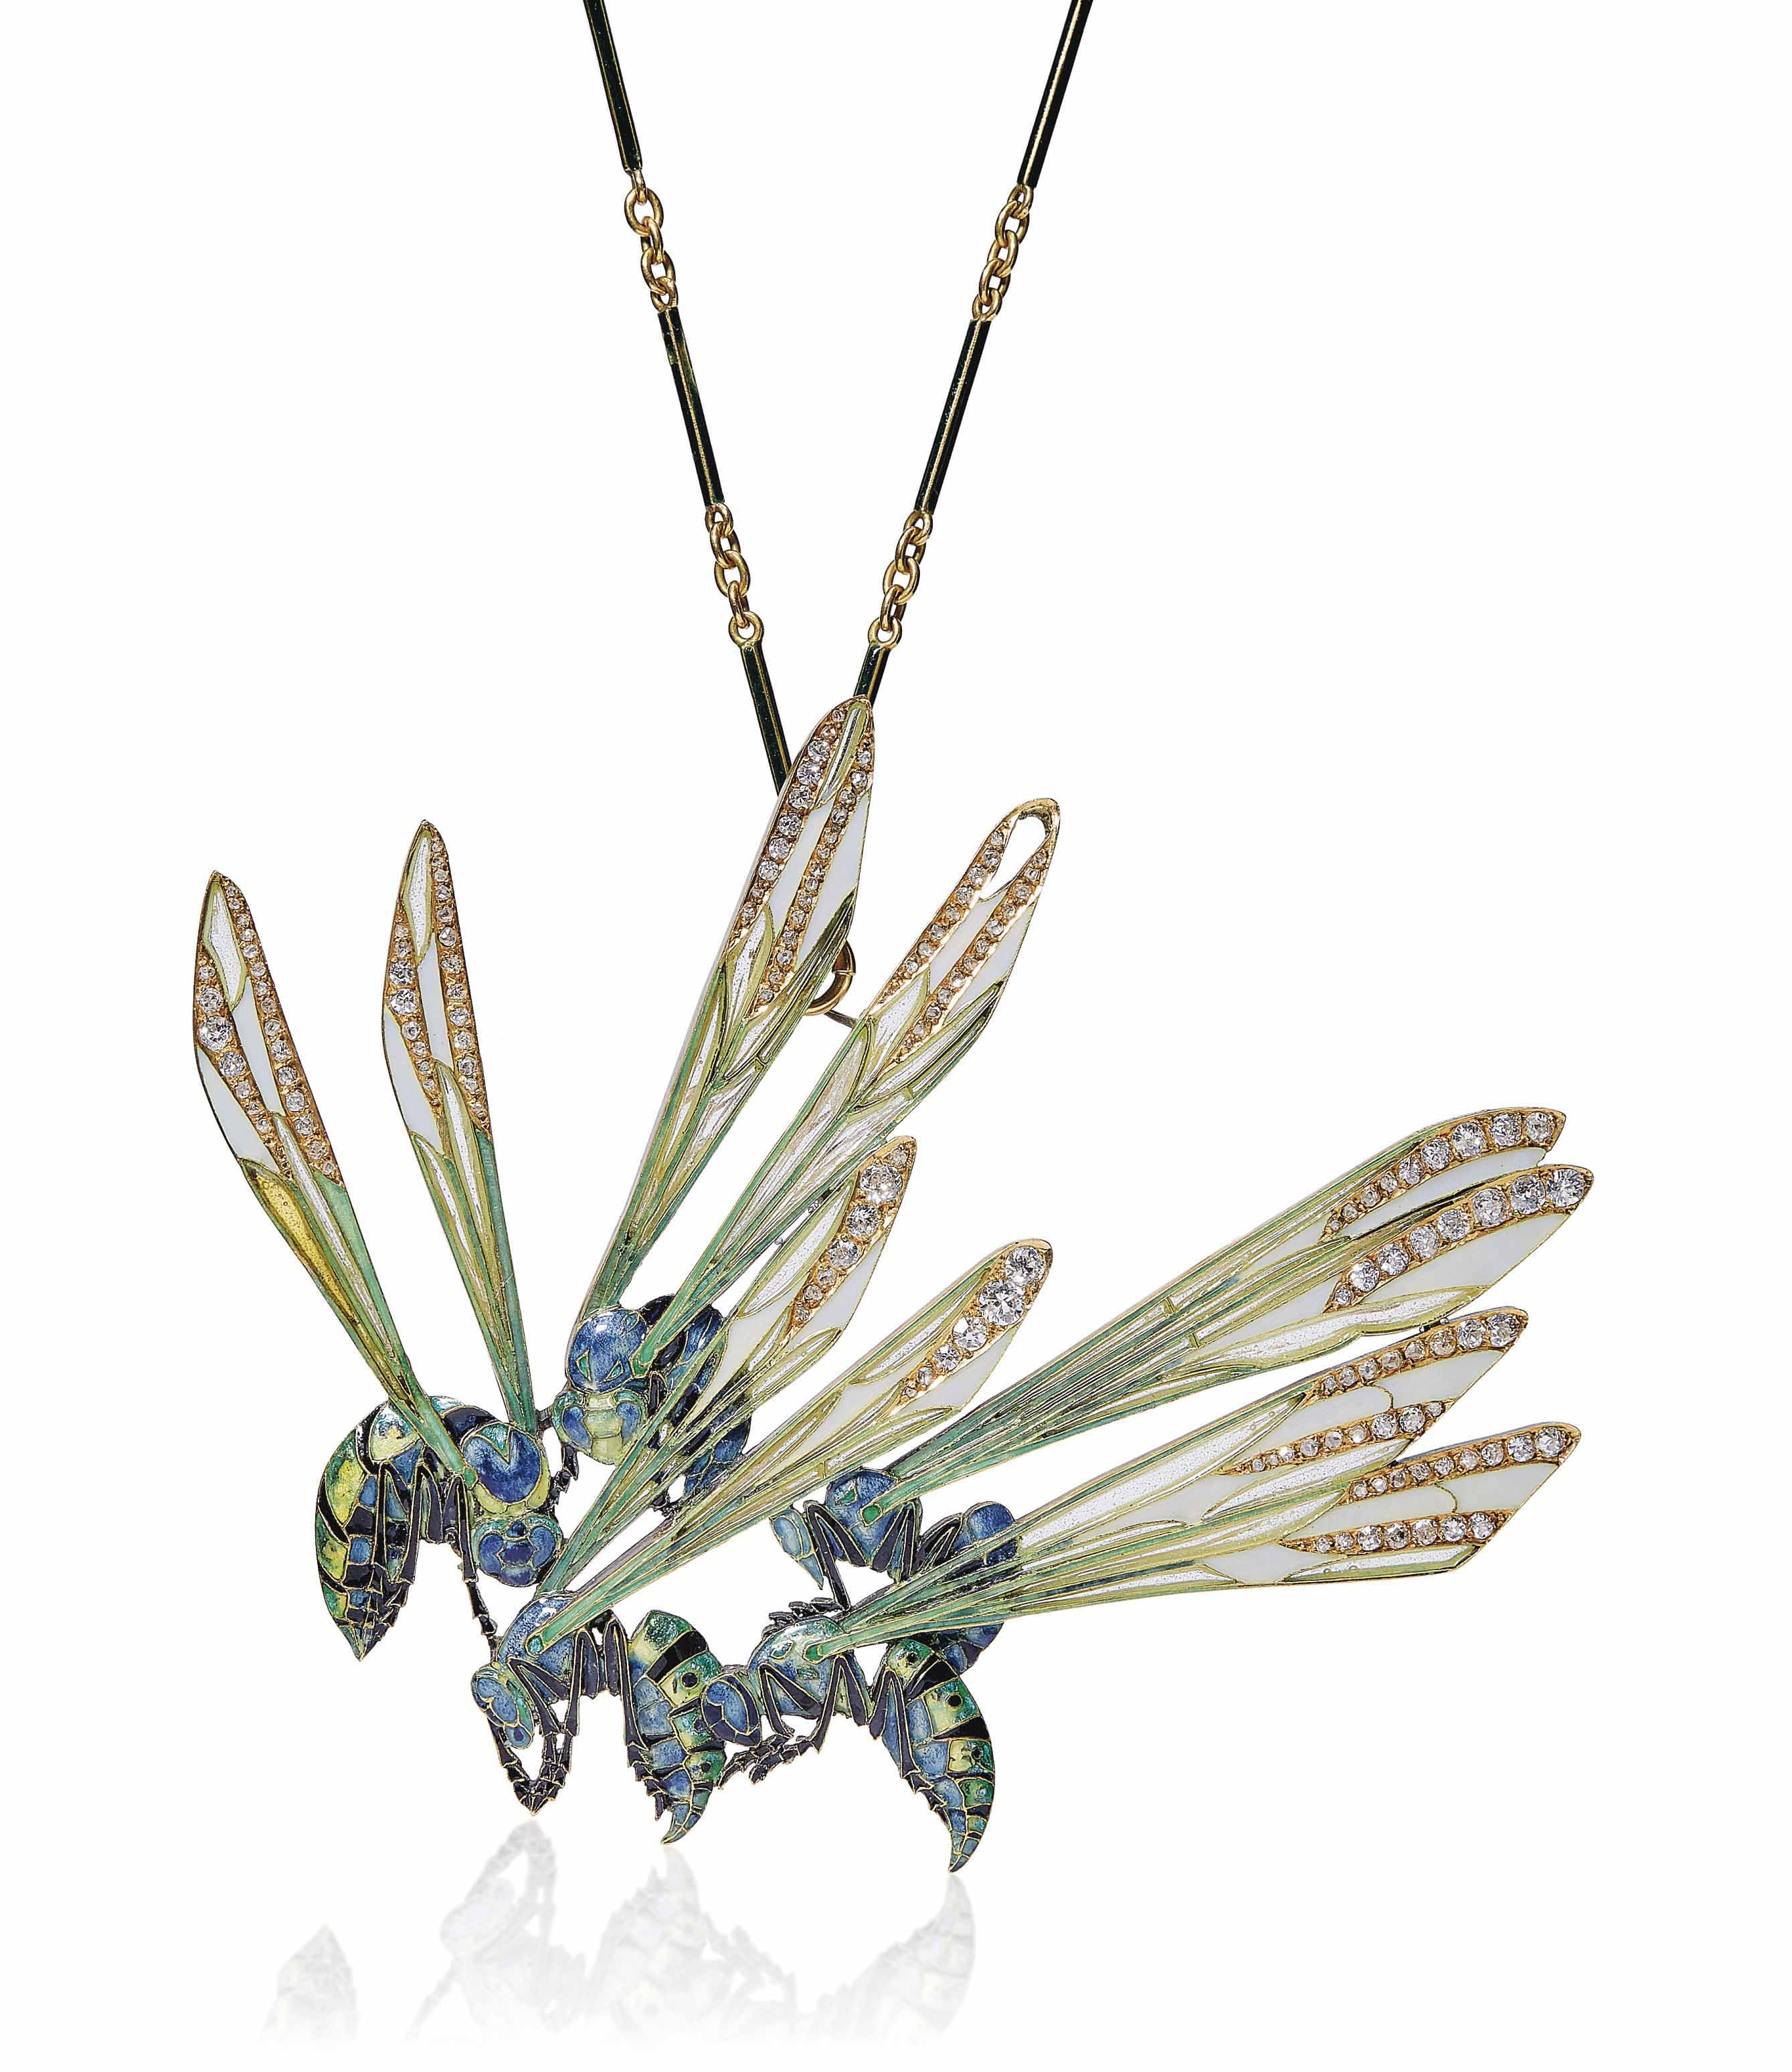 AN ART NOUVEAU ENAMEL AND DIAMOND 'WASP' PENDANT/BROOCH, BY RENÉ LALIQUE